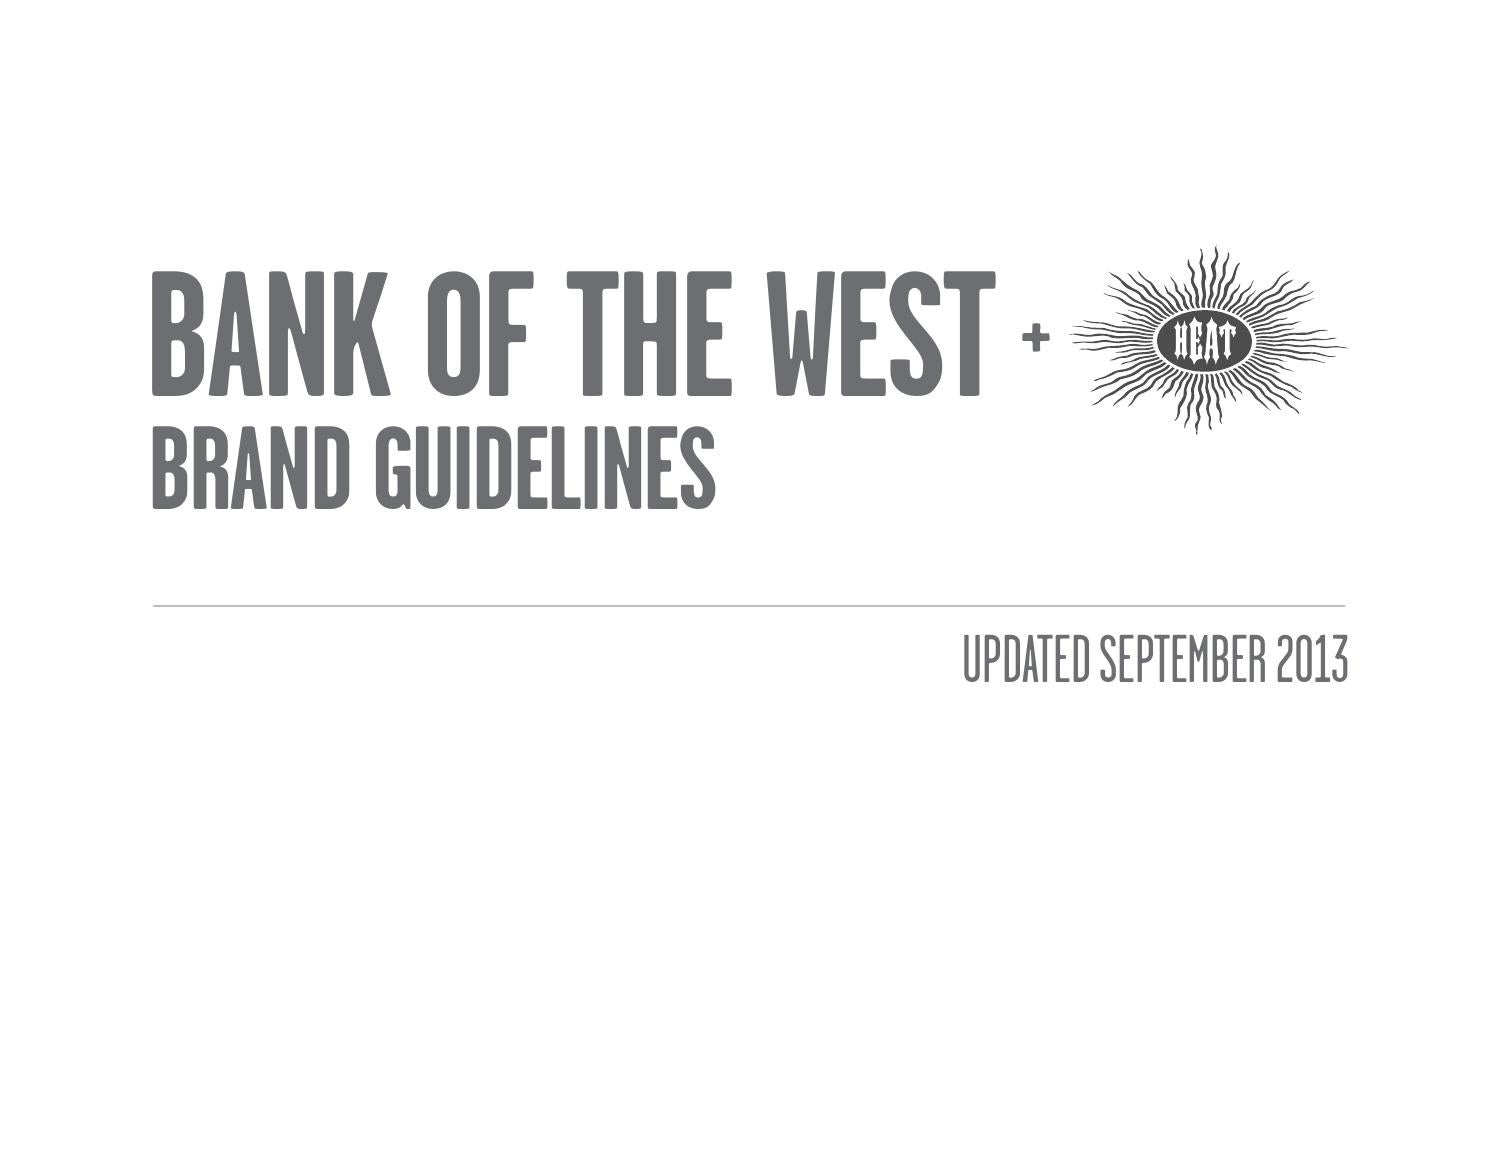 Bank of the West Brand Guidelines by Cheryln Quan - issuu